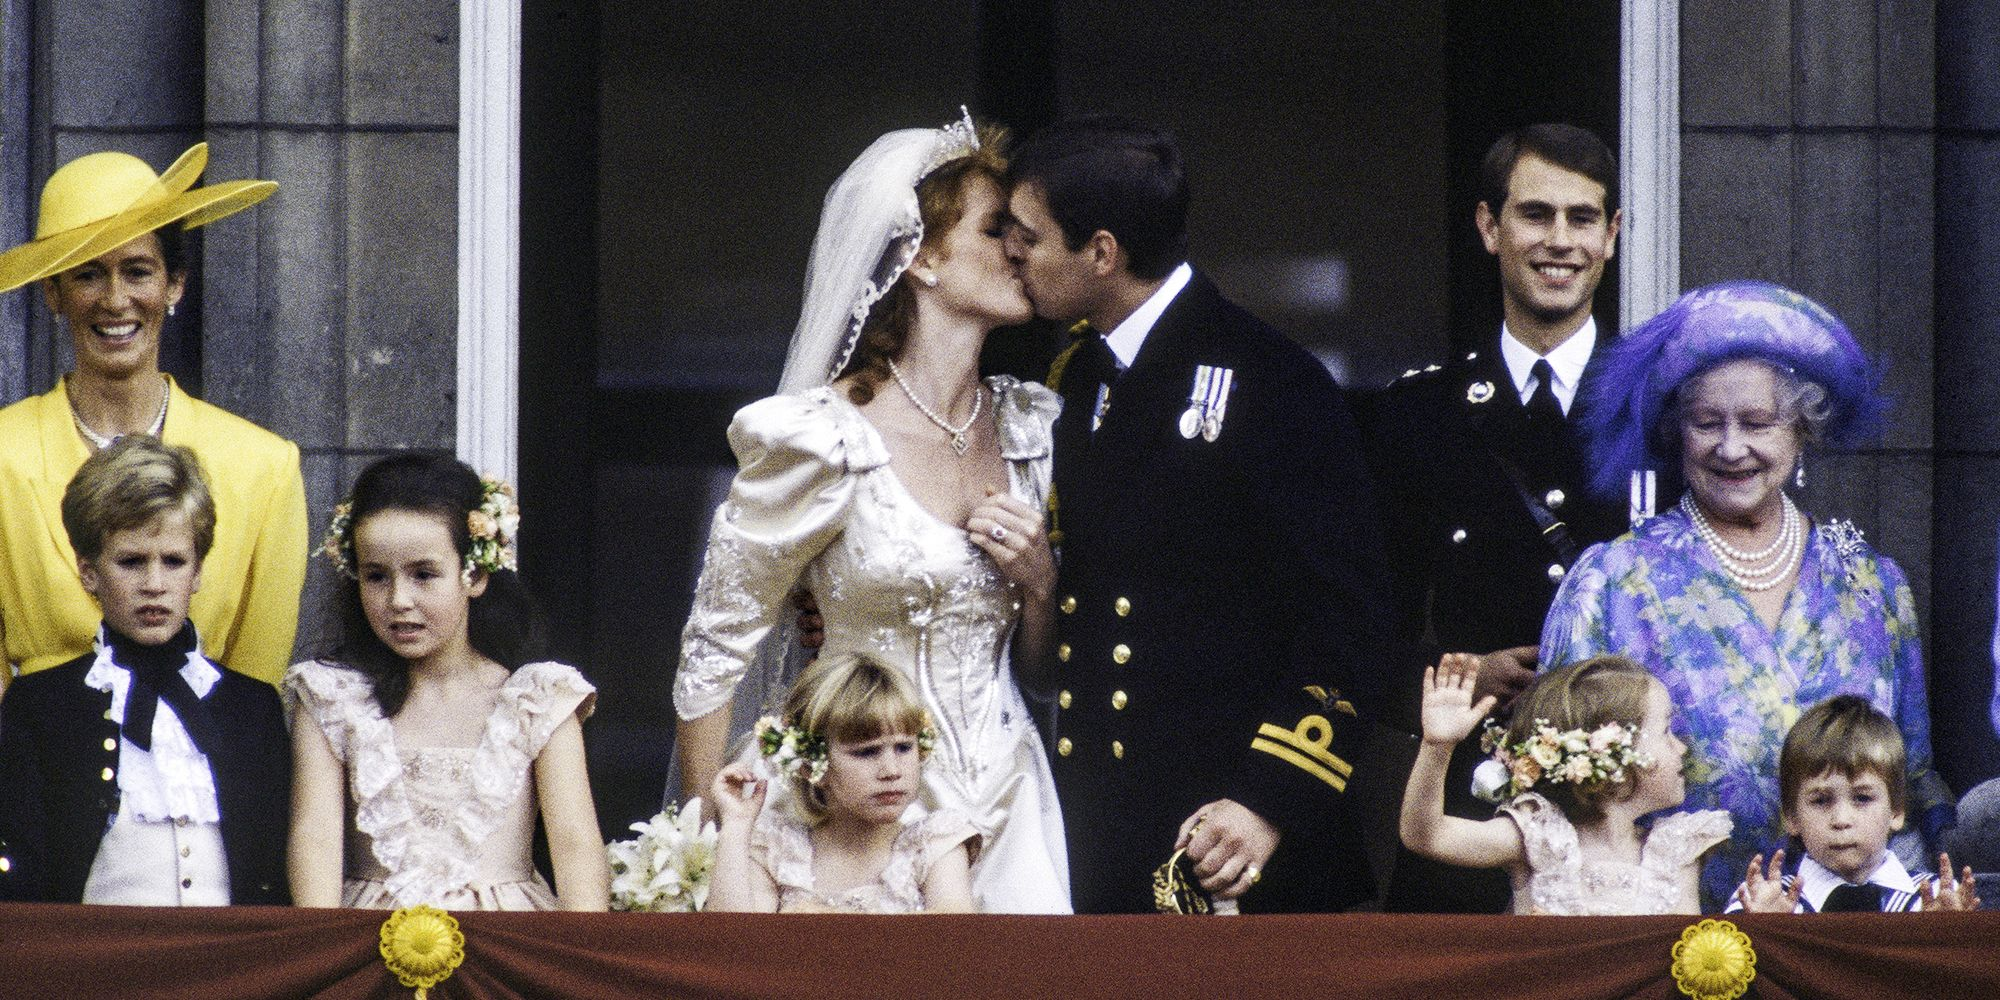 In Photos The 1986 Royal Wedding Of Prince Andrew And Sarah Ferguson